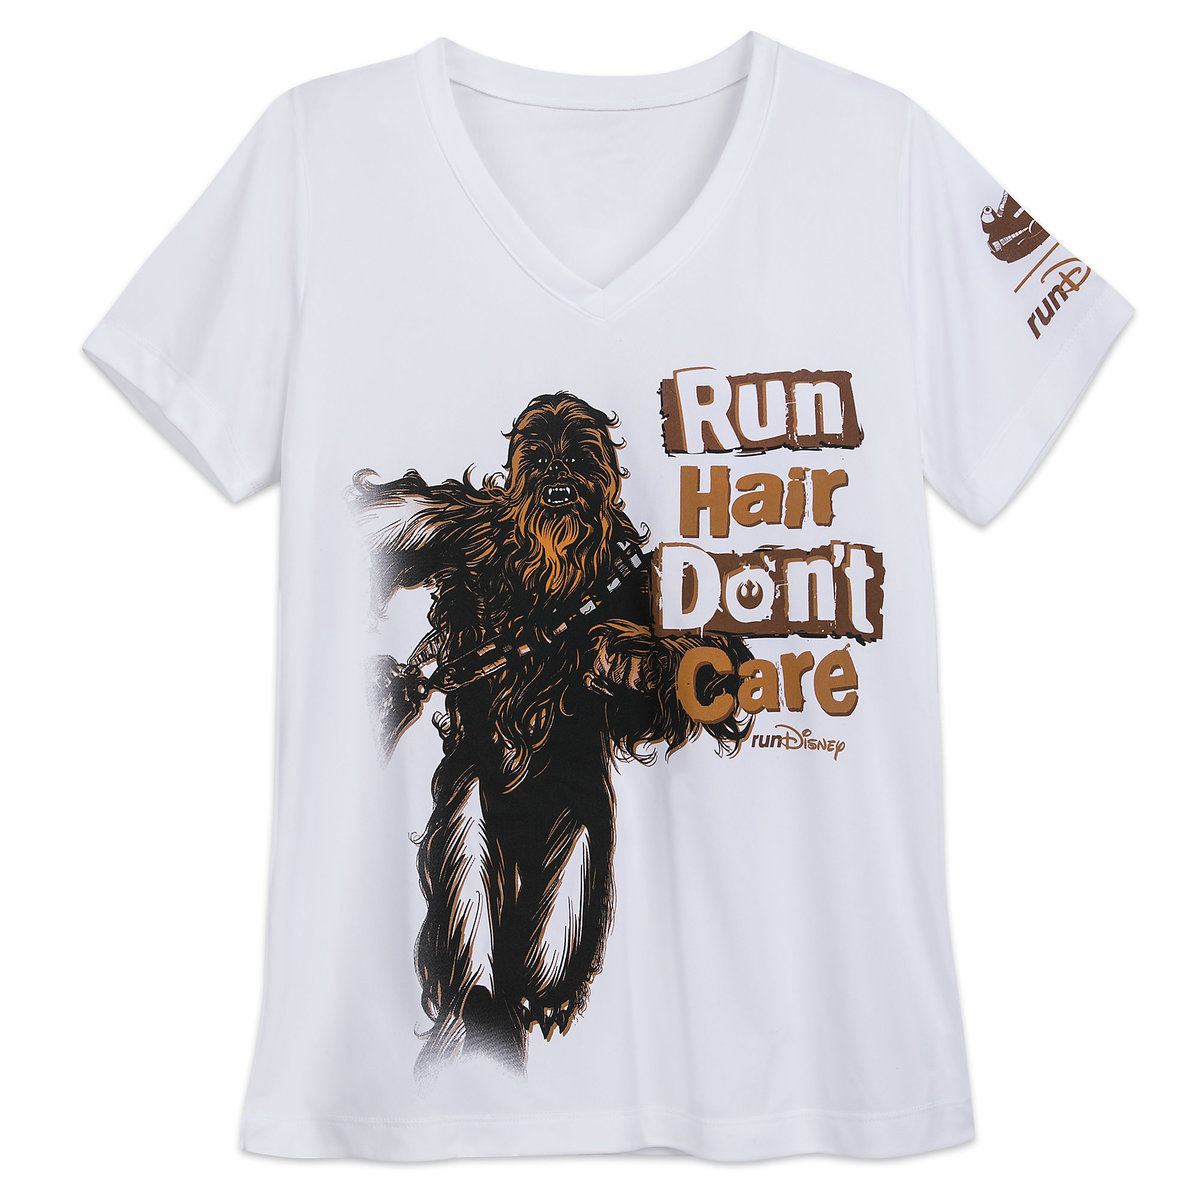 4ac7f726f Product Image of Chewbacca runDisney T-Shirt for Women - Star Wars # 1